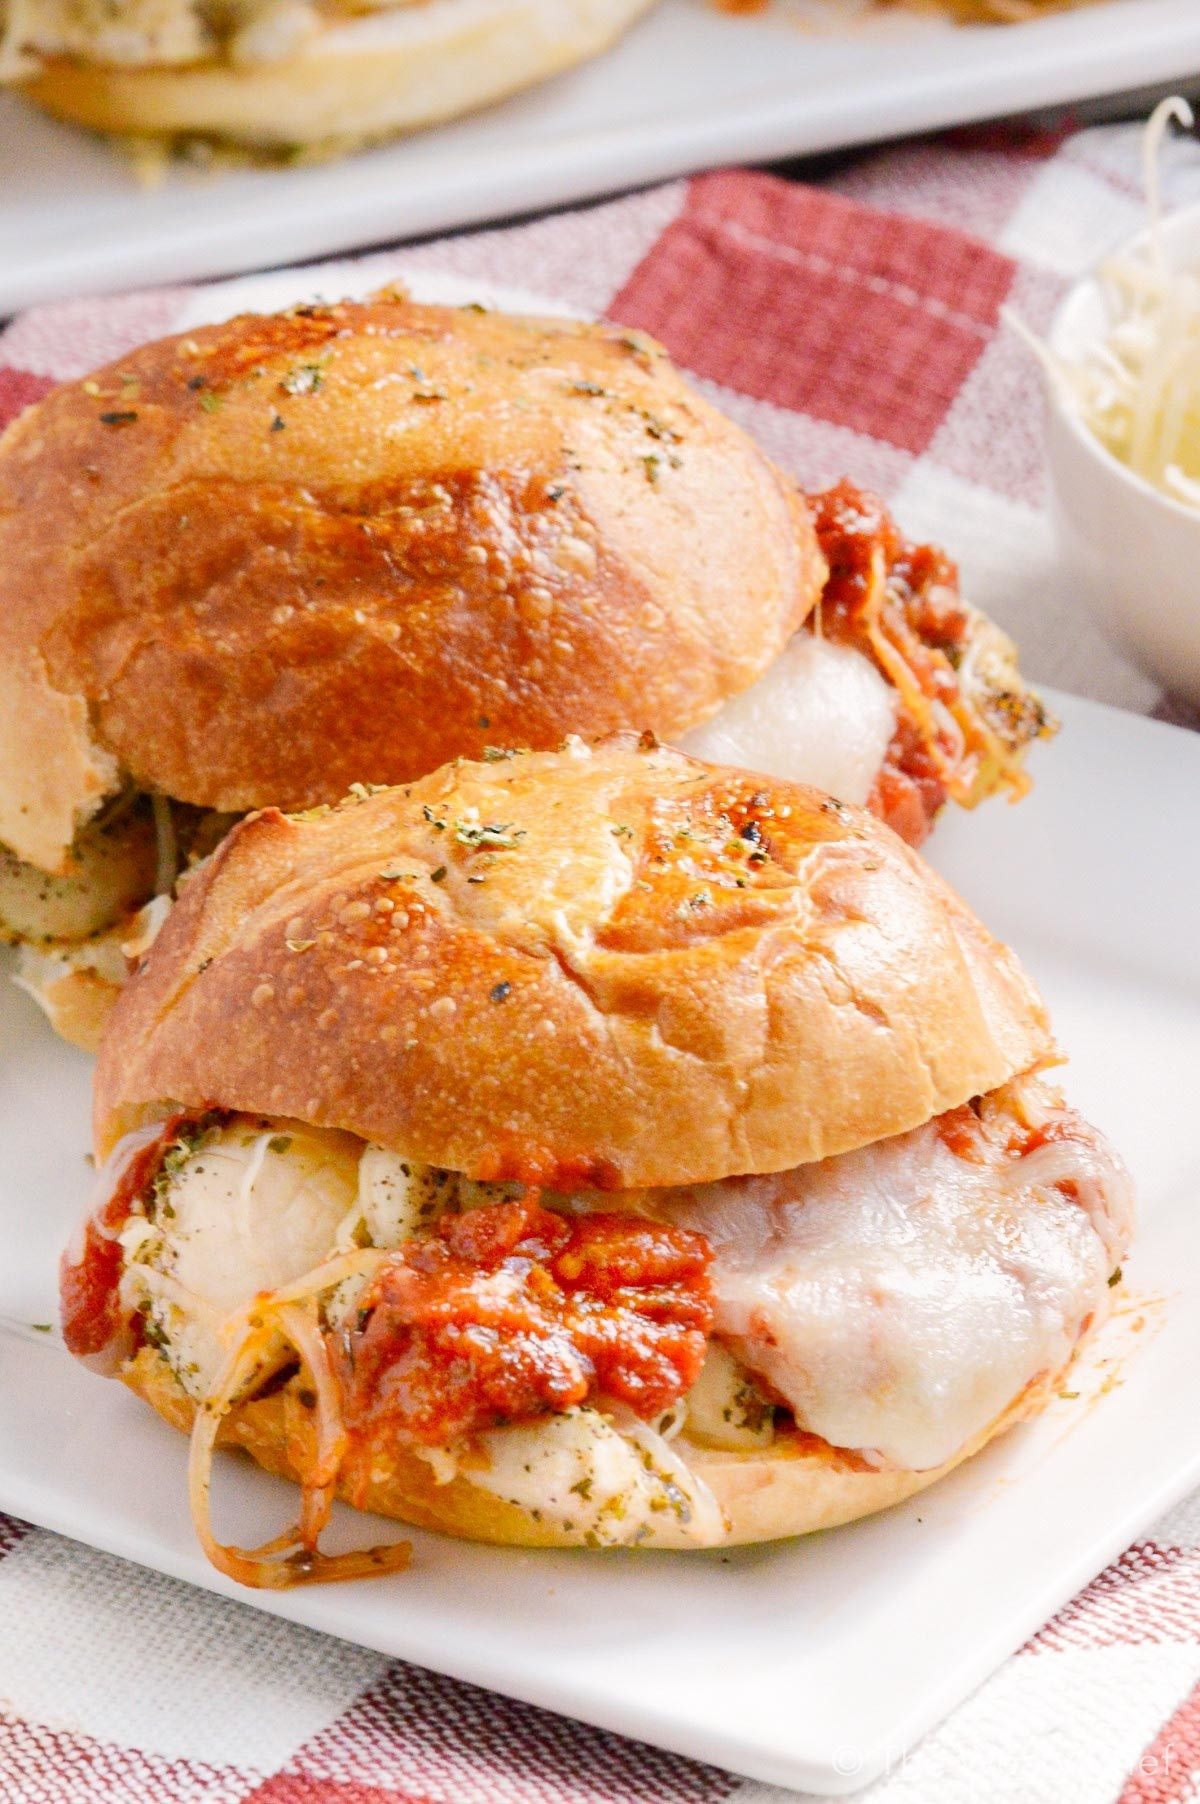 Two sliders stuffed with cheesy chicken Parmesan and tomato sauce.